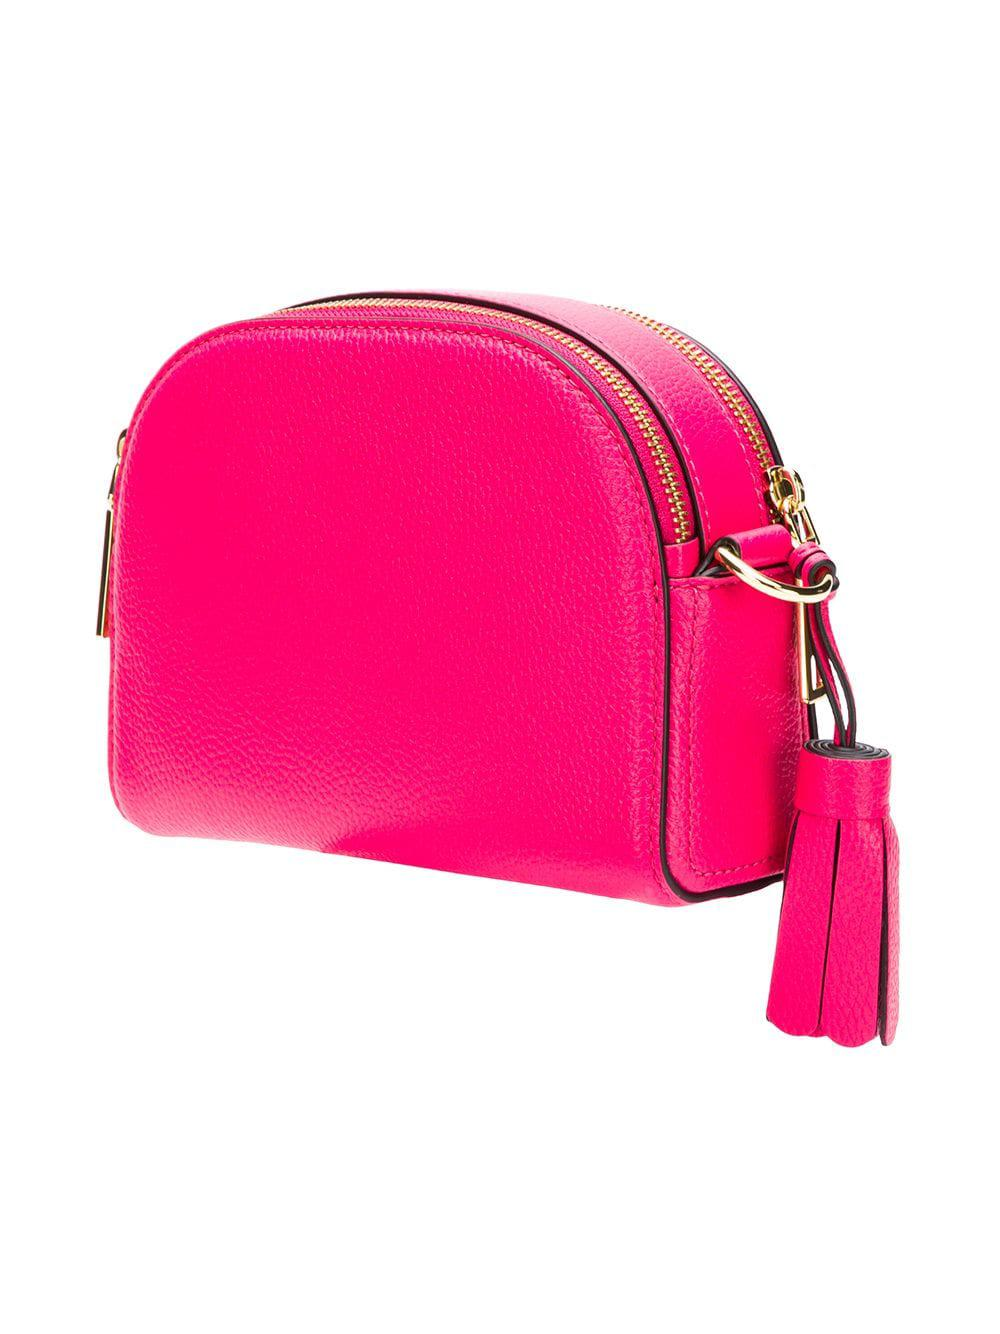 26141d2cdf50 Marc Jacobs Double J Shutter Bag in Pink - Save 39.80769230769231 ...